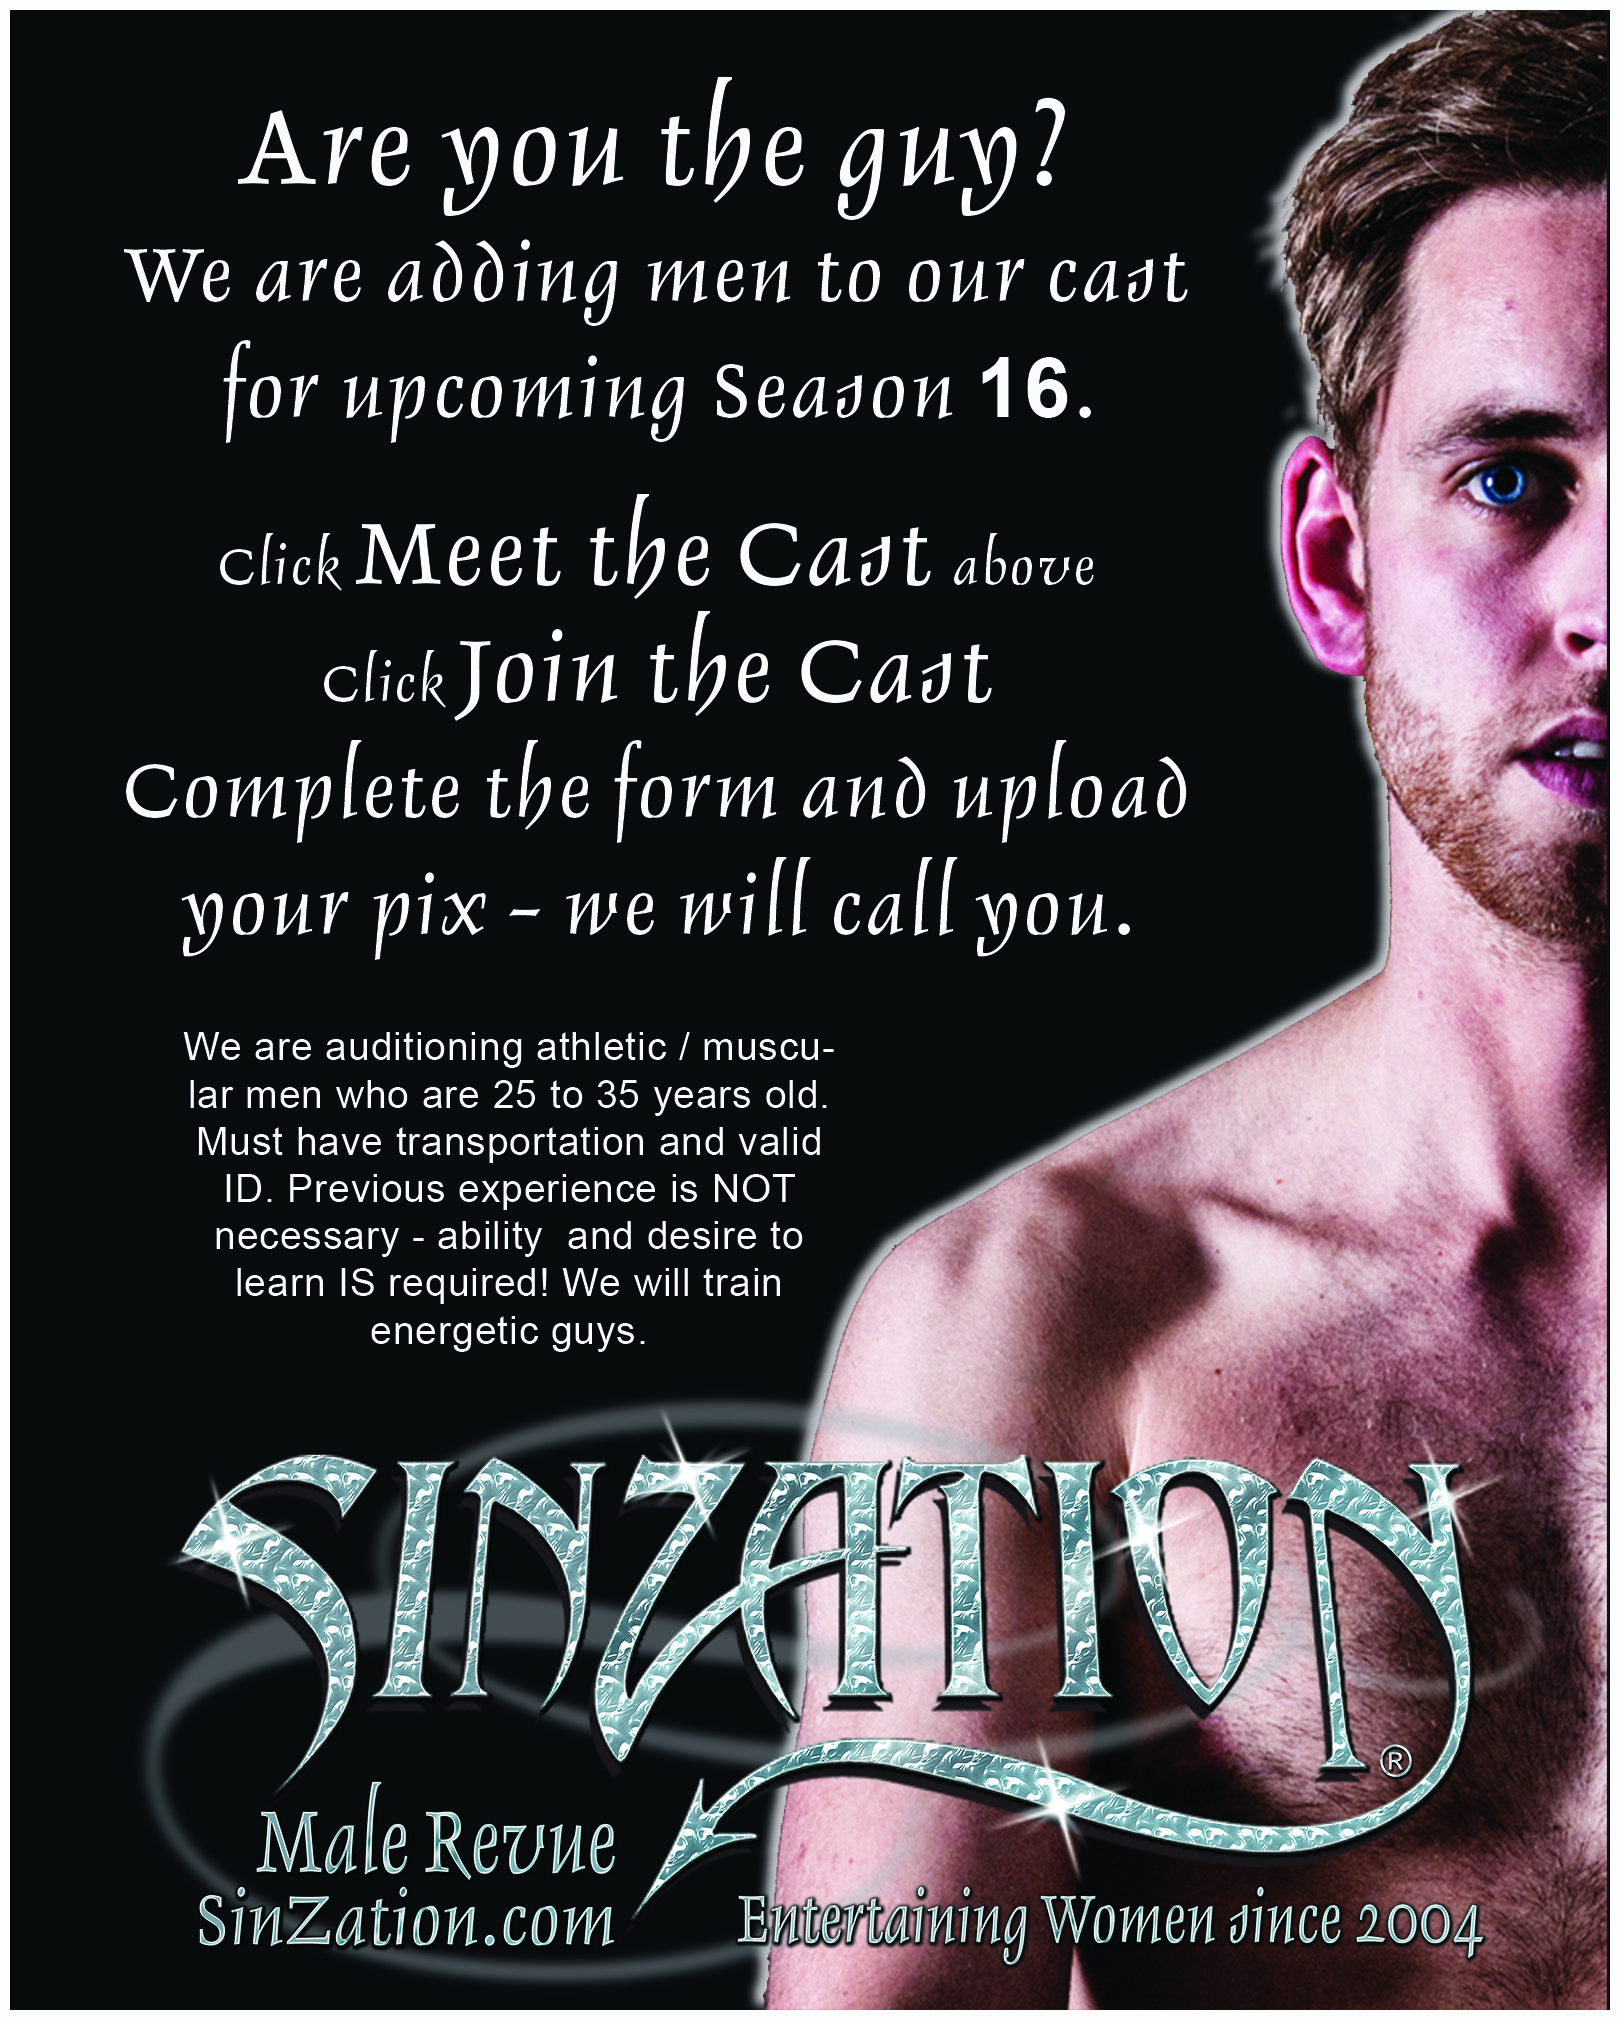 Audition for the best male revue in Chicago